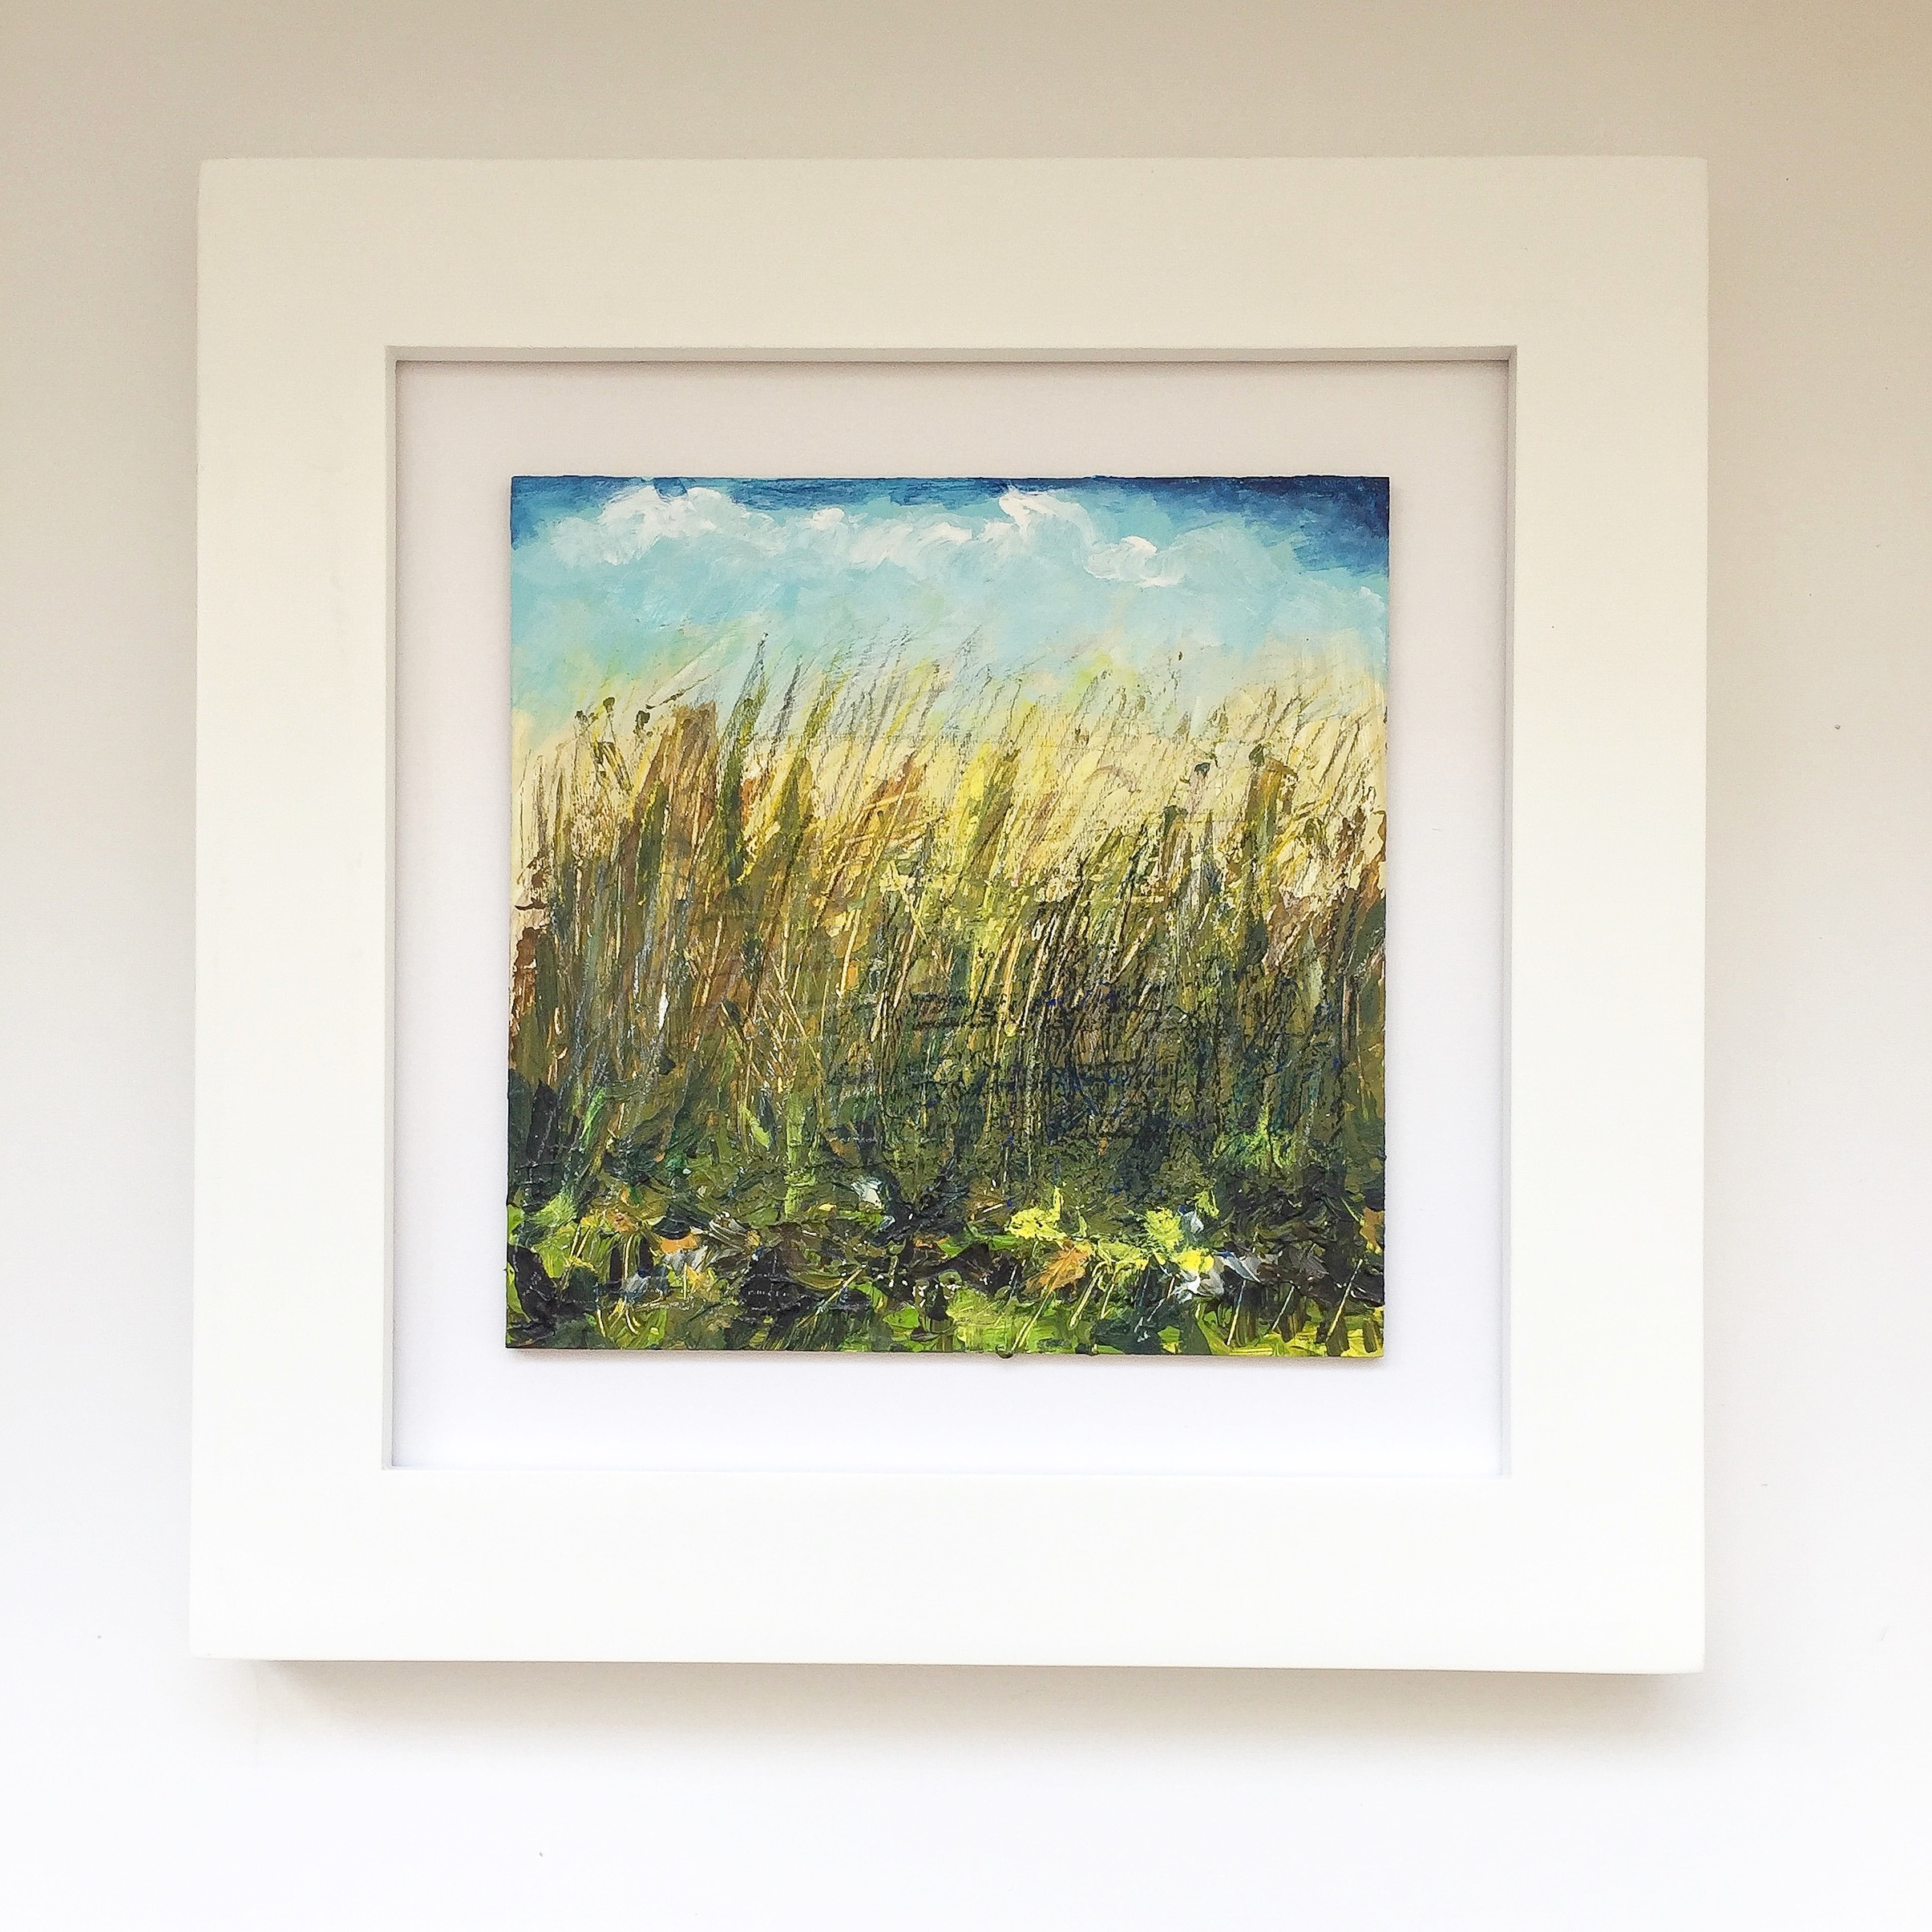 New England Contemporary Abstract Landscape Painting by Megan Carty, grass painting